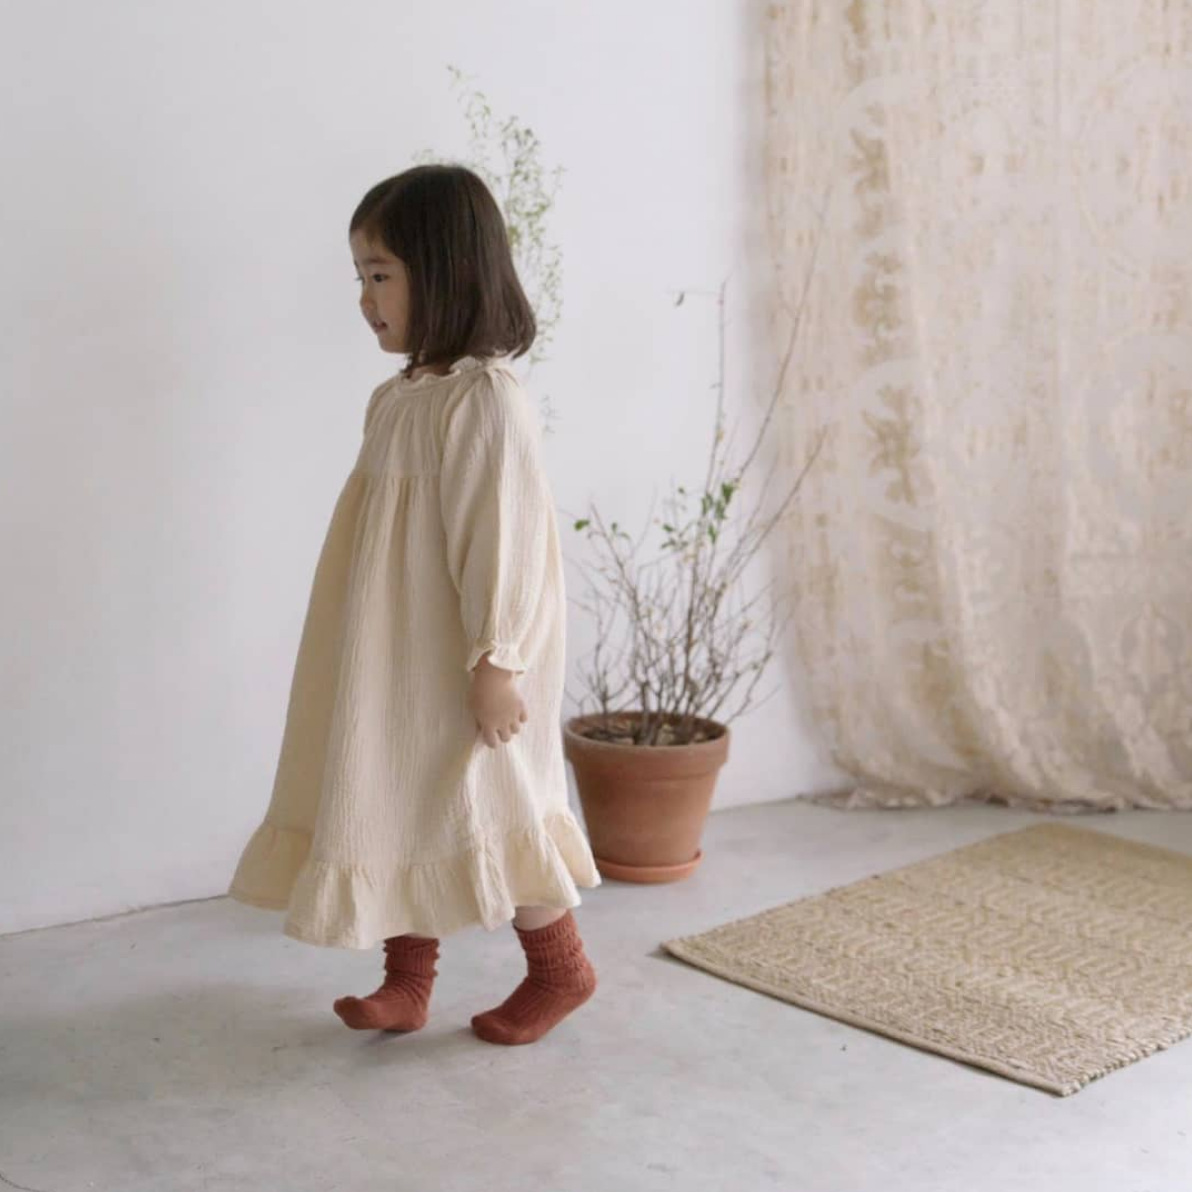 SMITN BEBE - an online boutique offering a beautifully curated assortment of clothing from Korea, that focuses on high quality, essential and modern designs for children's clothing